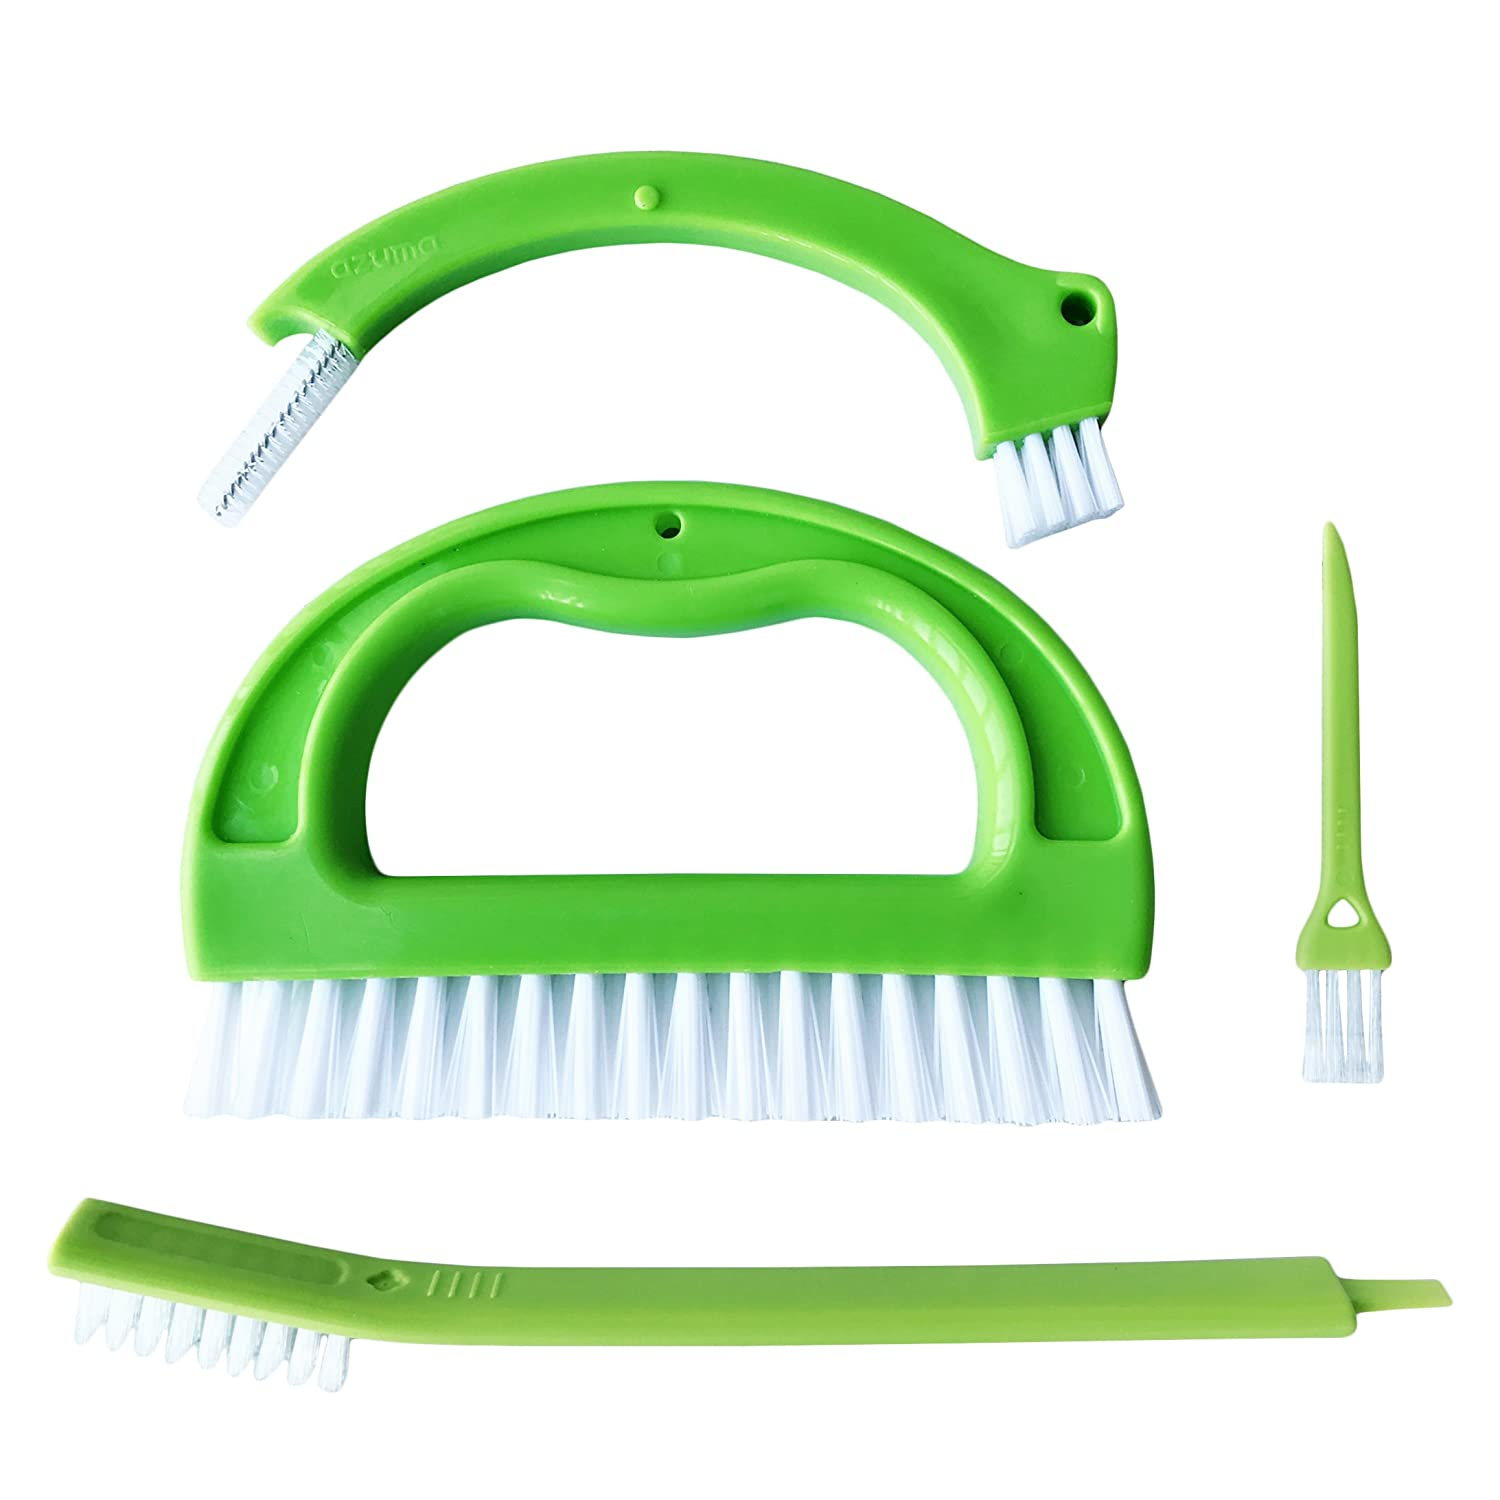 Tile Joint Cleaning Scrubber Brush Set with Nylon Bristles Floors 4 in 1 Joint Scrubber for Deep Cleaning Grout Brush Kitchen and Other Household Great Use for Shower